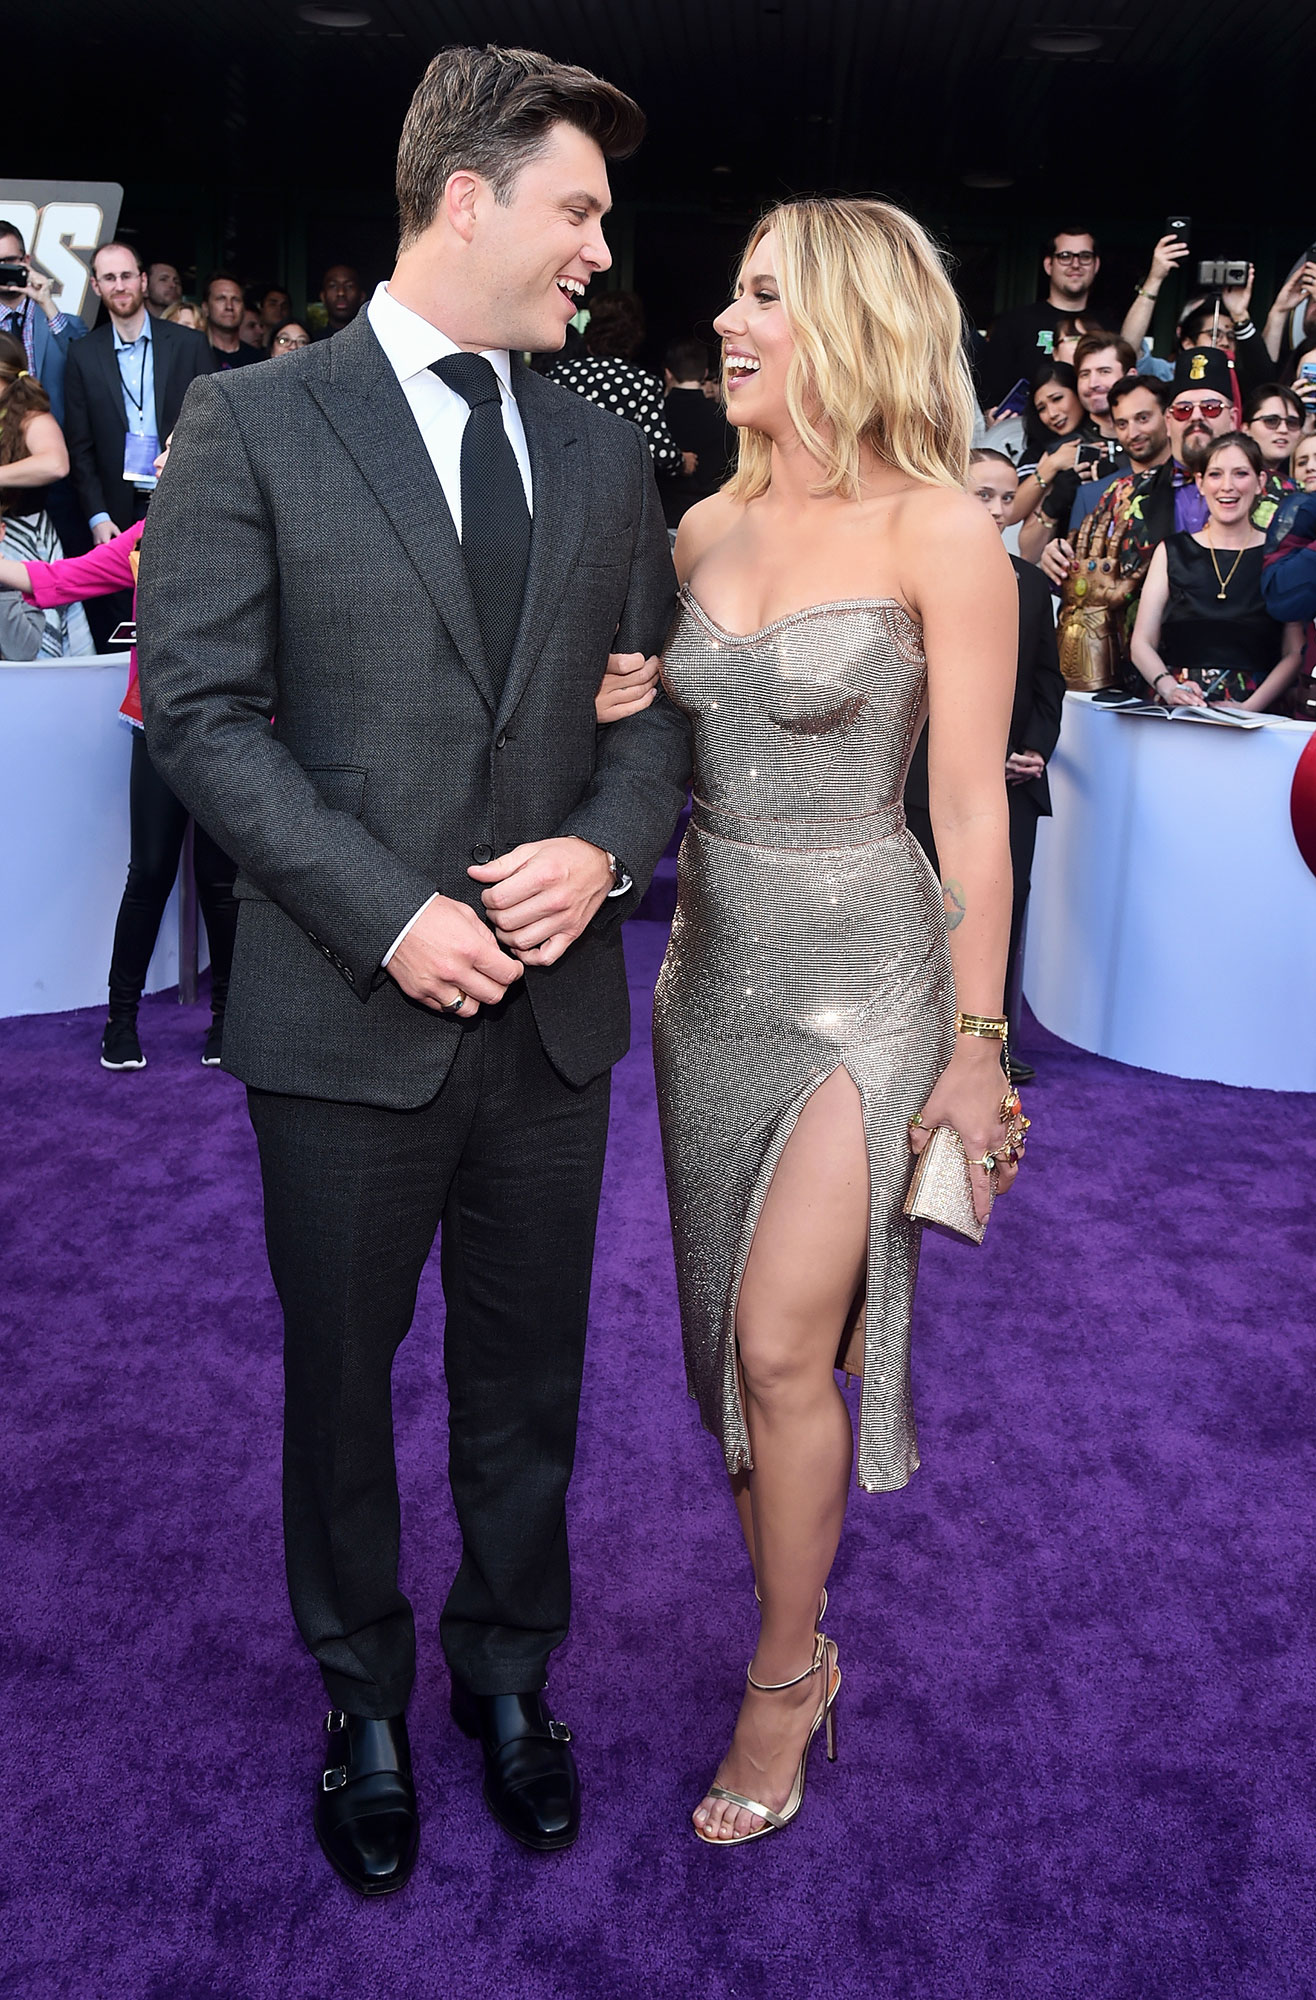 Scarlett Johansson and Colin Jost Relationship Timeline Avengers Endgame - Johansson's publicist confirmed to the Associated Press that the couple are engaged. They have not set a wedding date yet.